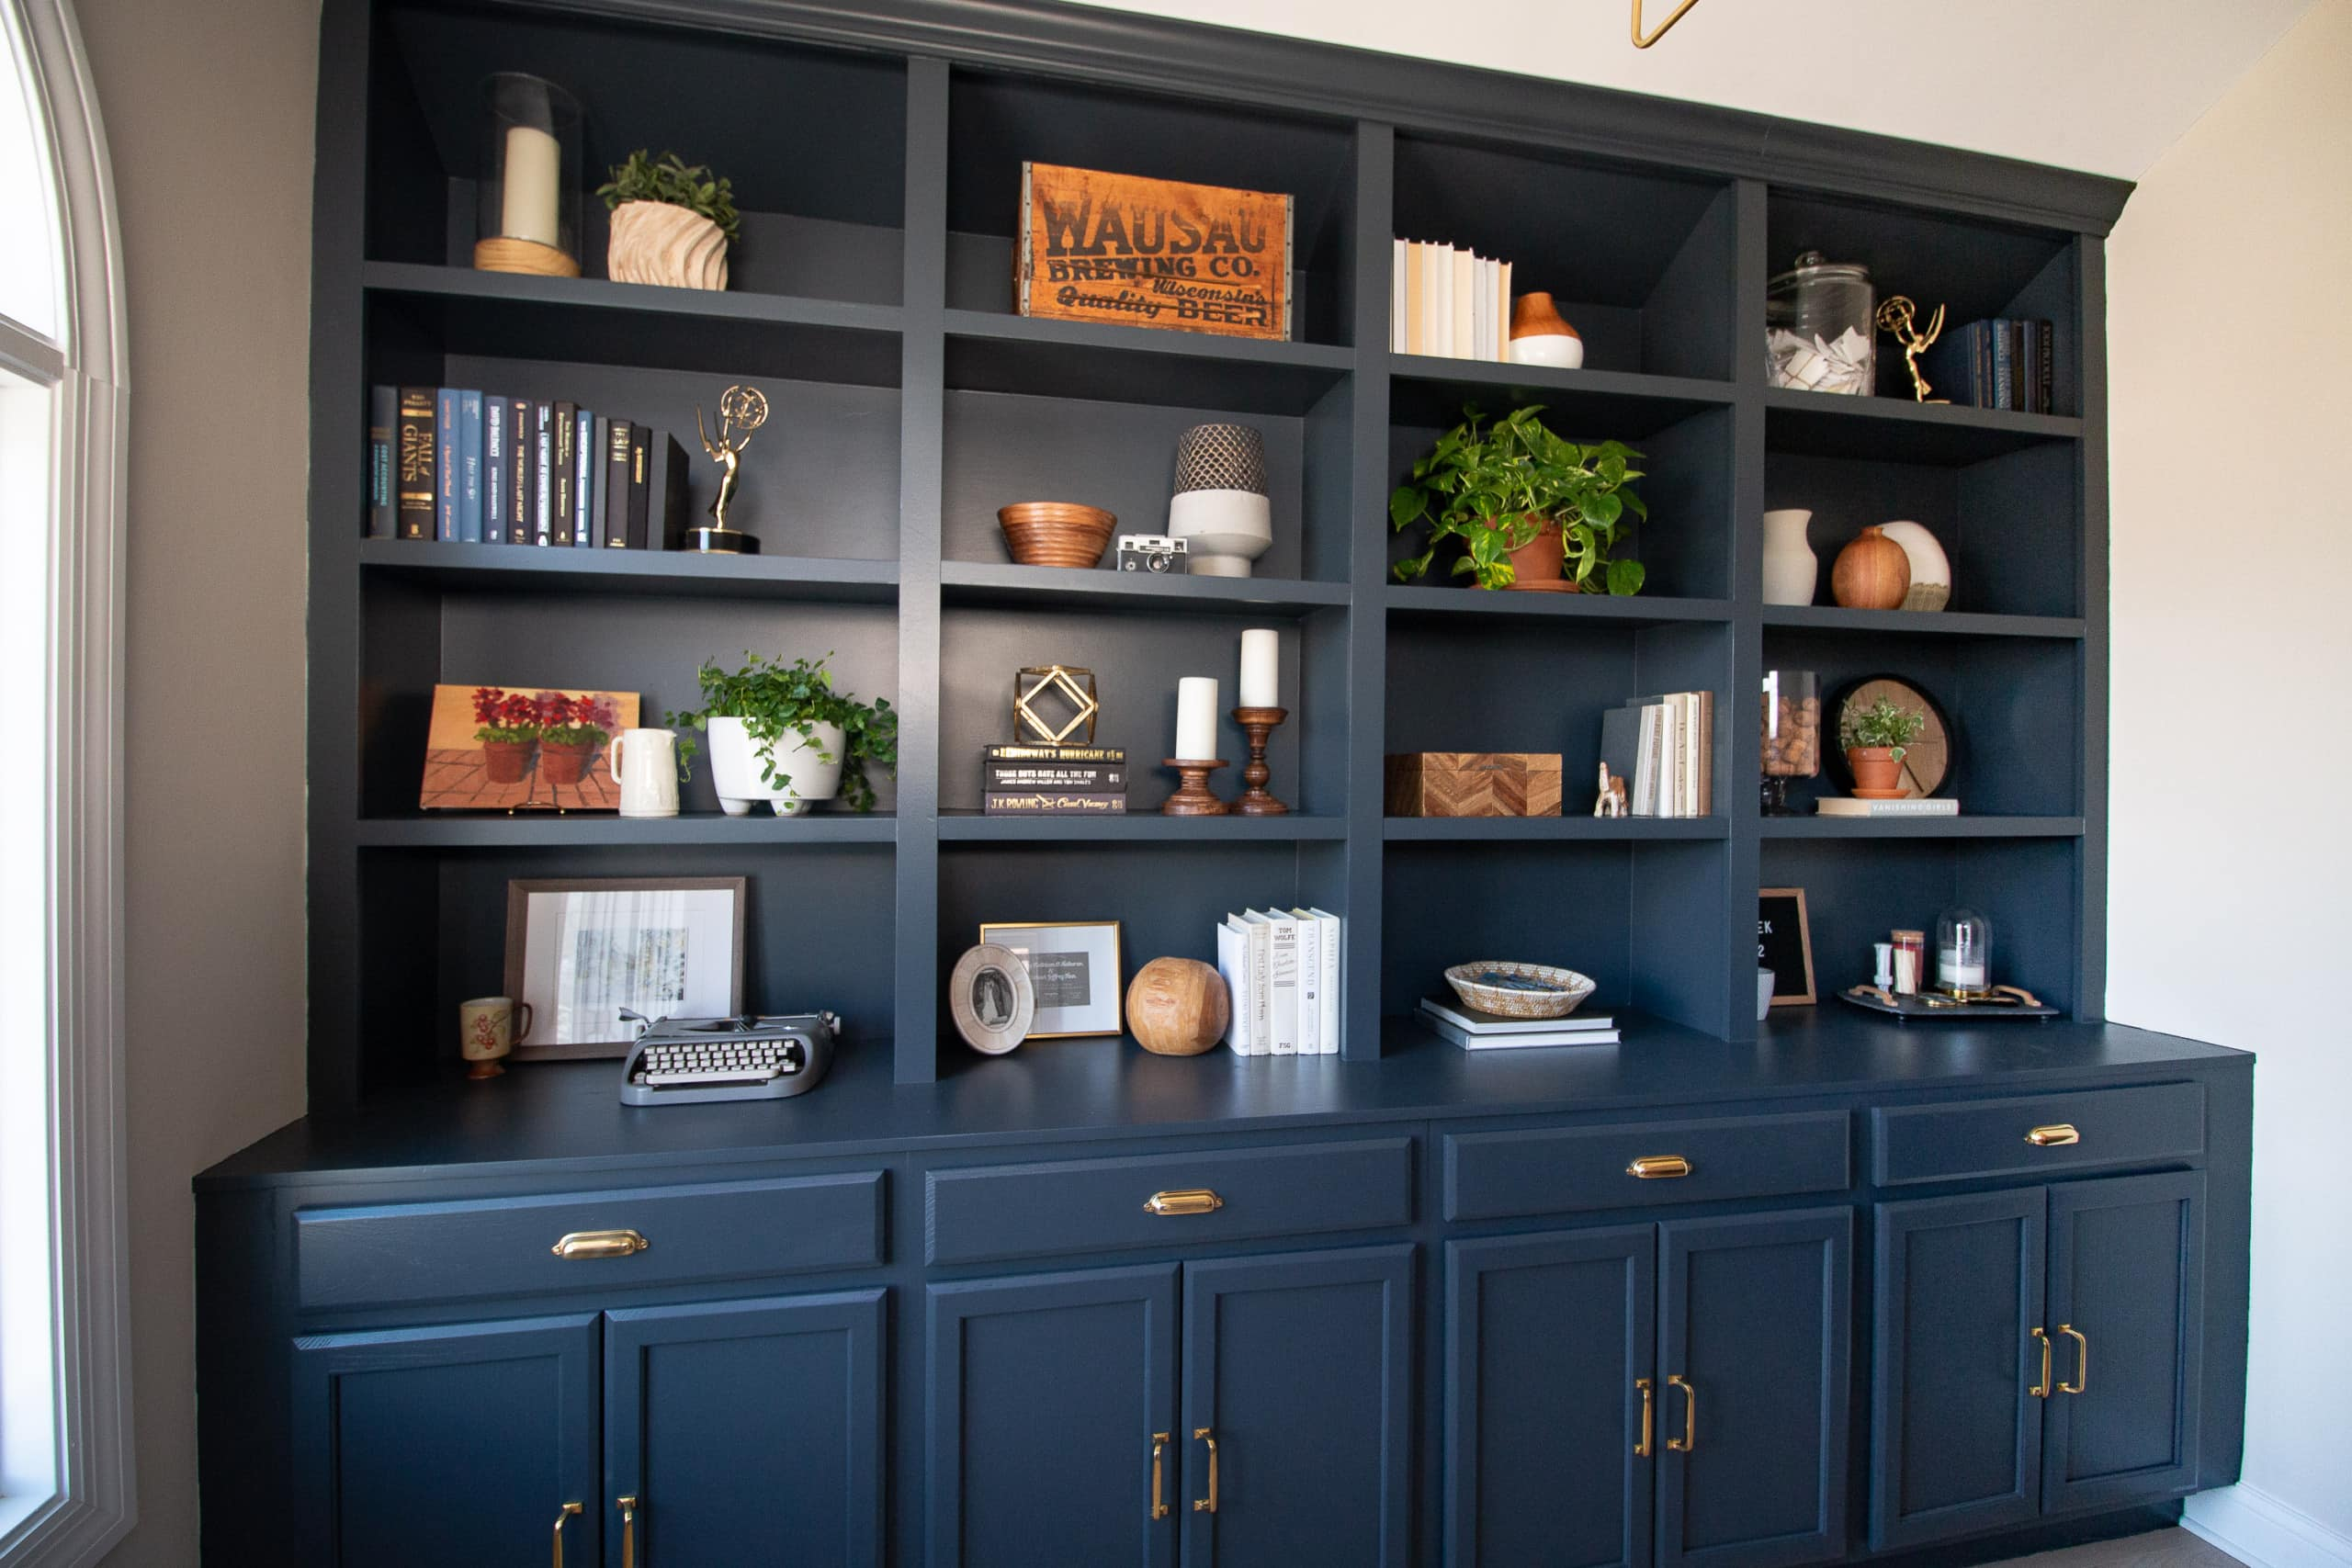 Tips for shelf styling in your home